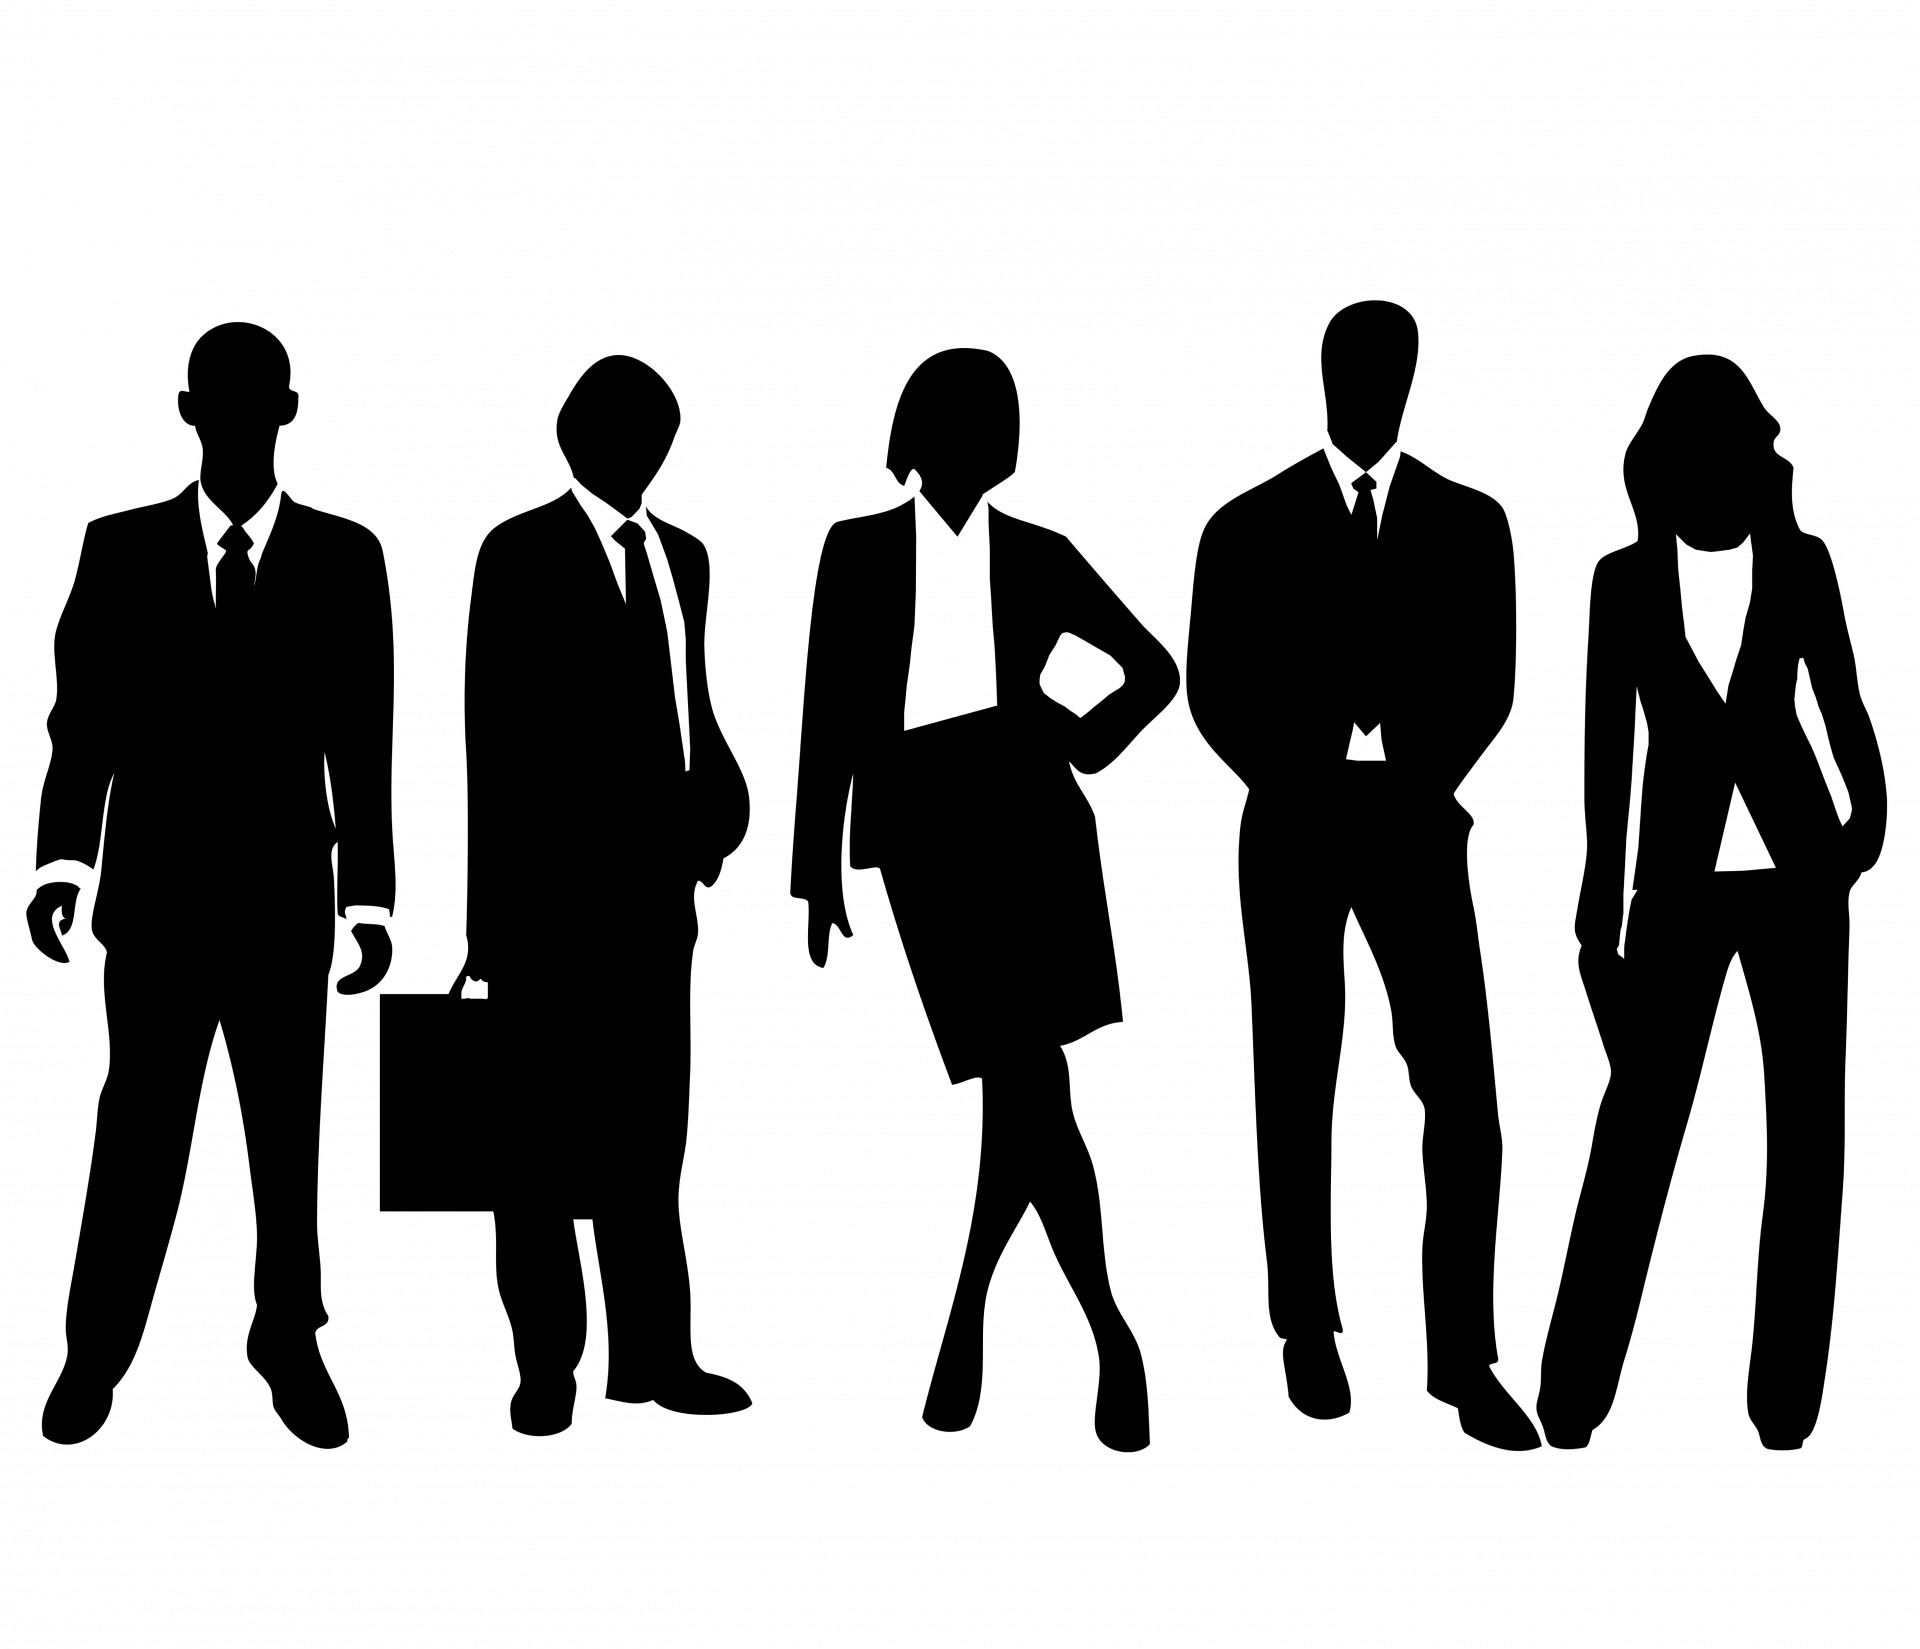 Shaow clipart business person Silhouette business%20person%20silhouette Business People Images